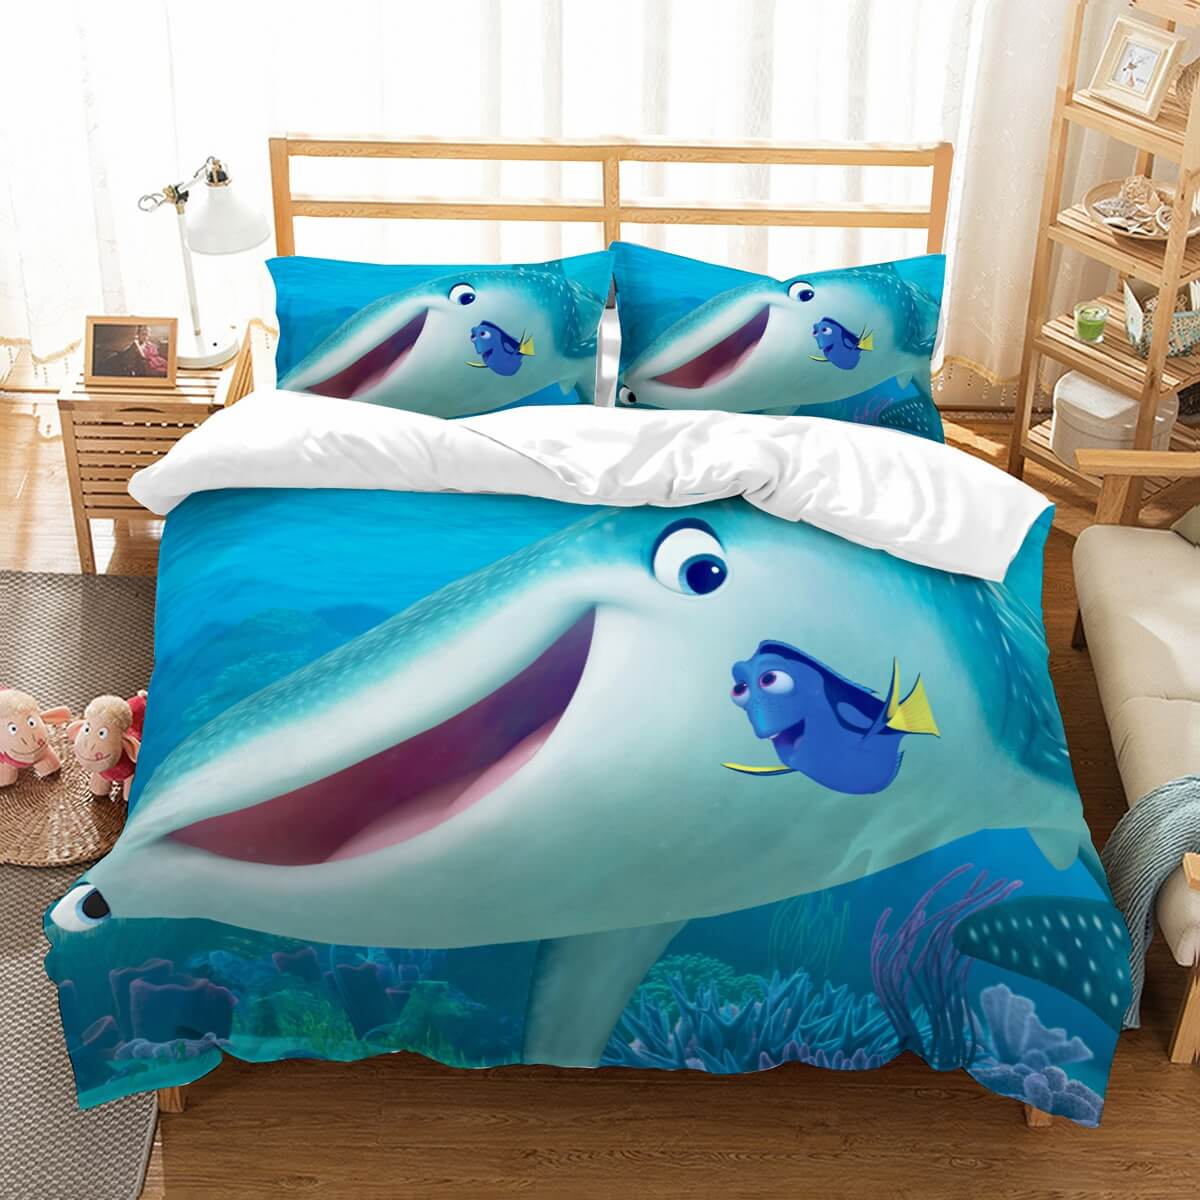 3D Customize  Finding Dory Bedding Set Duvet Cover Set Bedroom Set Bedlinen